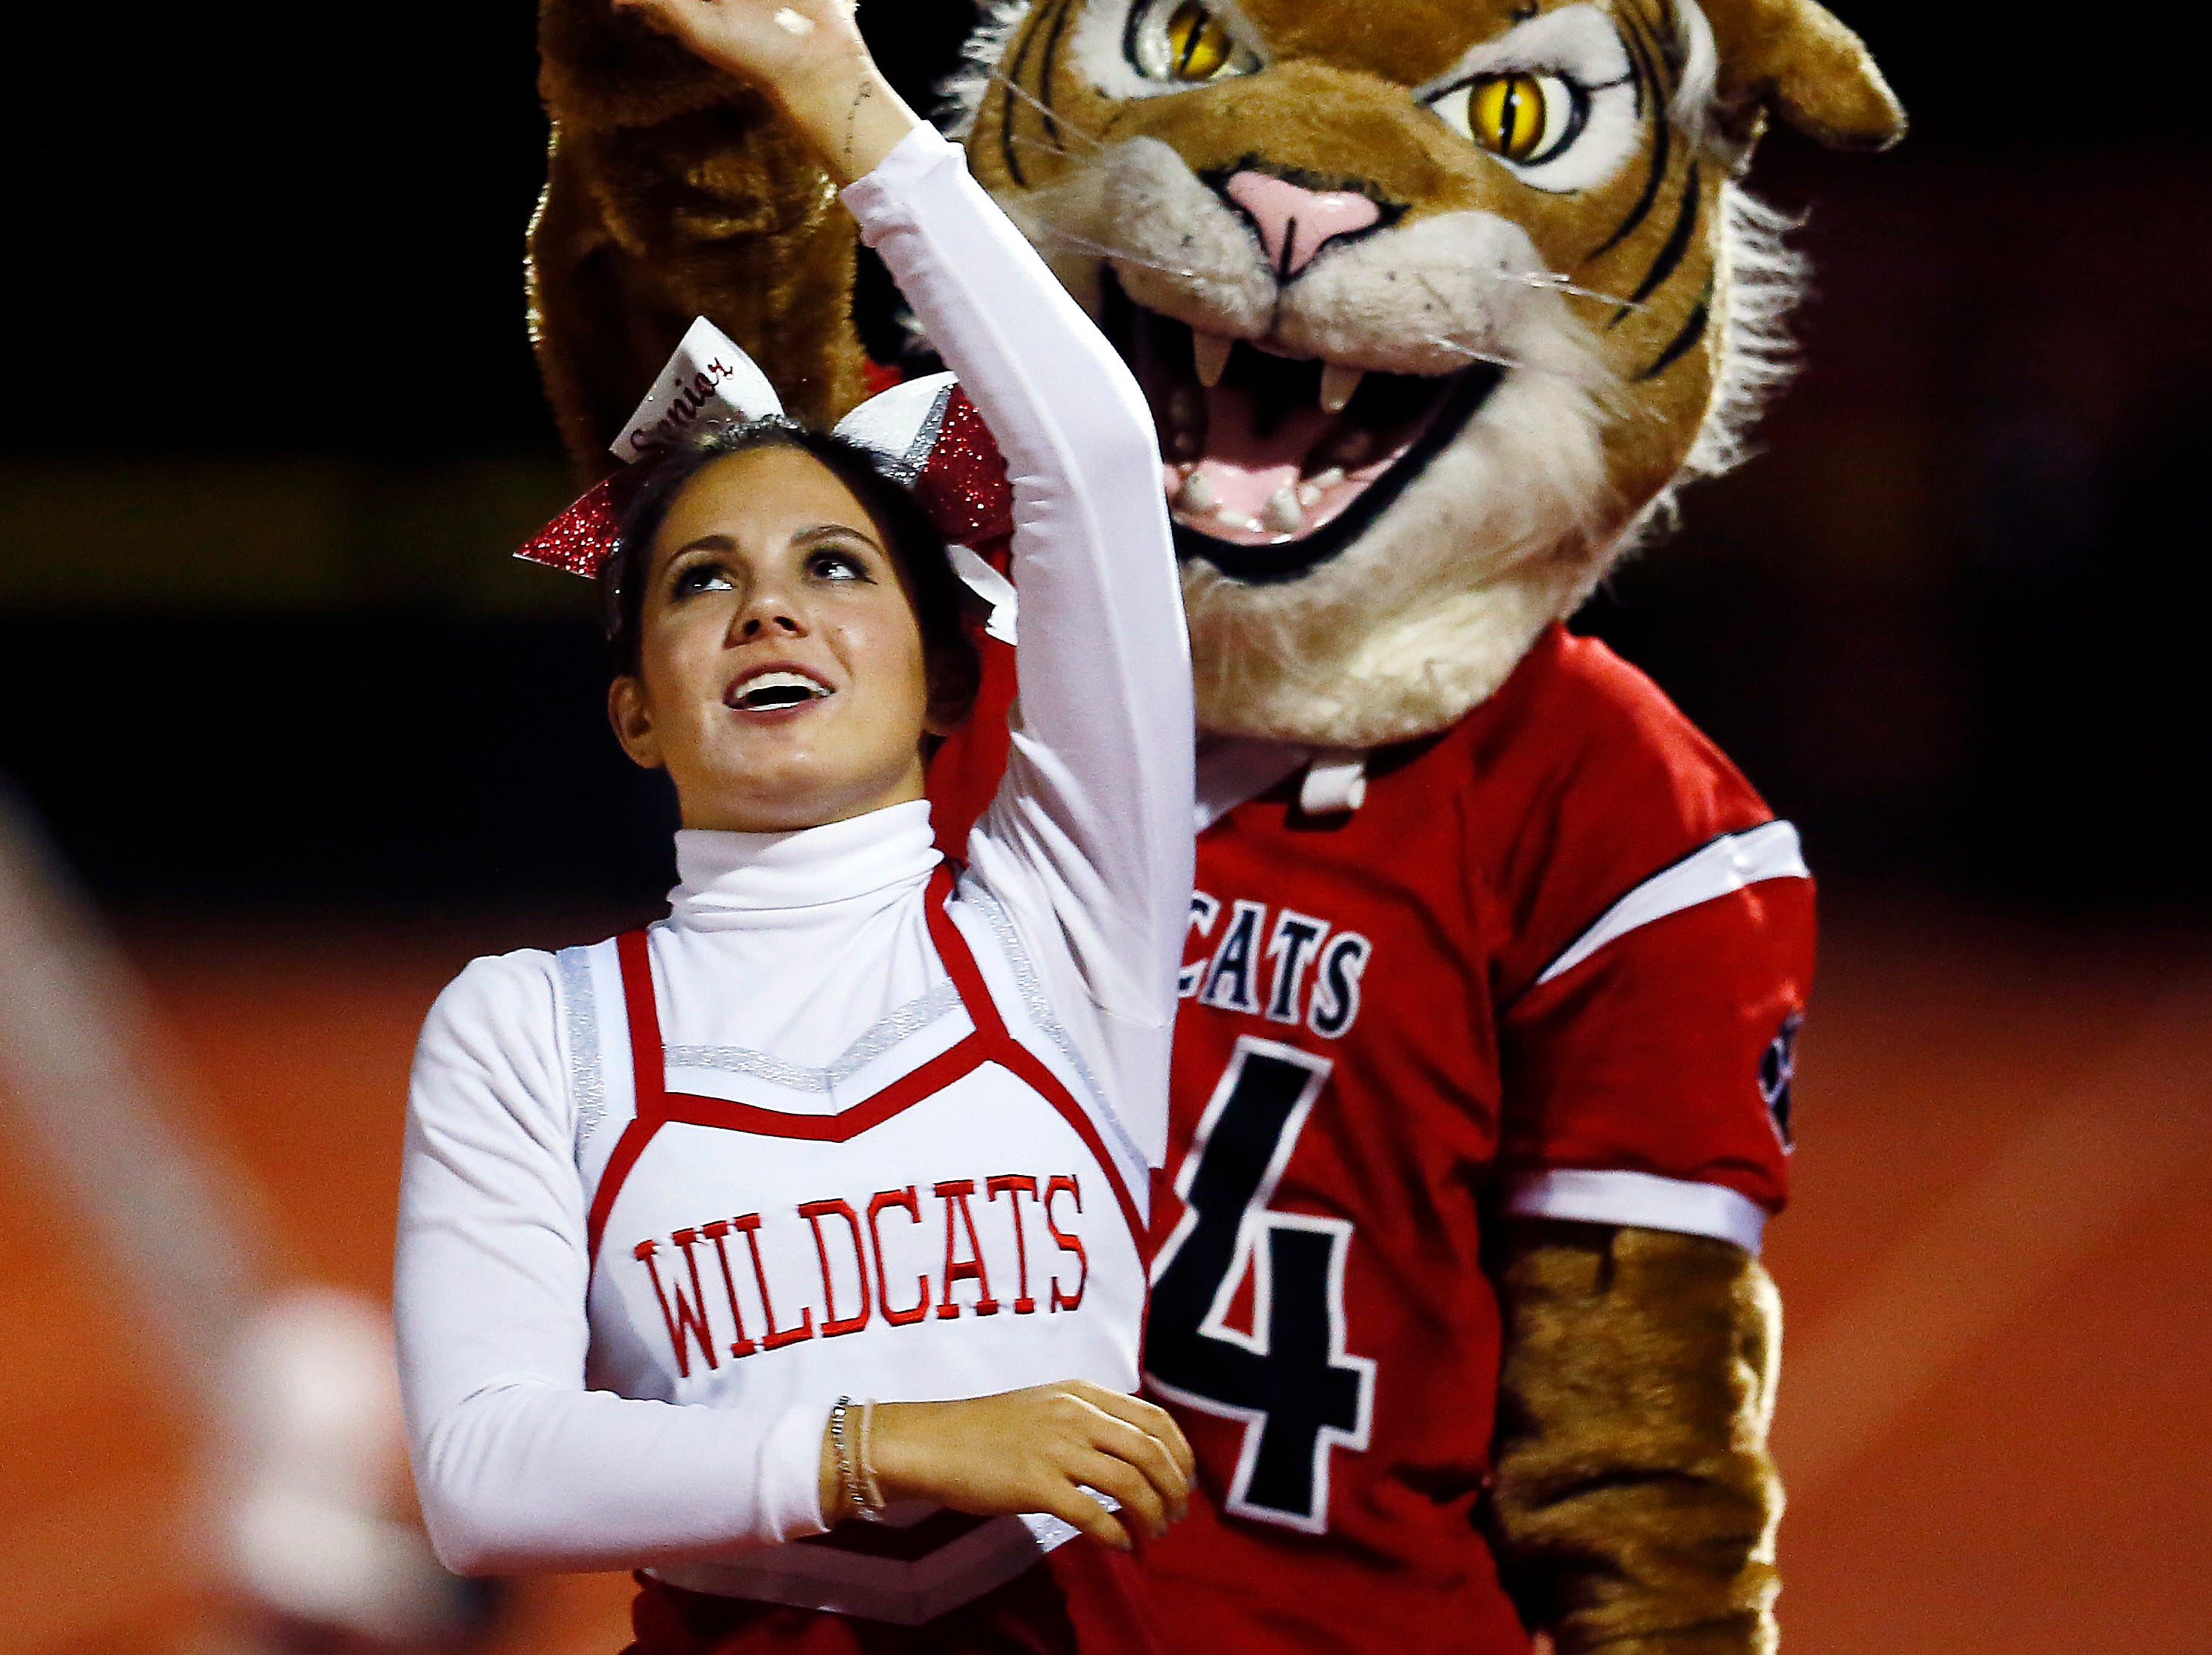 The Whippany Park Wildcat mascot dances with a cheerleader at halftime during their SFC American Blue Friday night football game vs. Boonton. September 21, 2018, Whippany, NJ